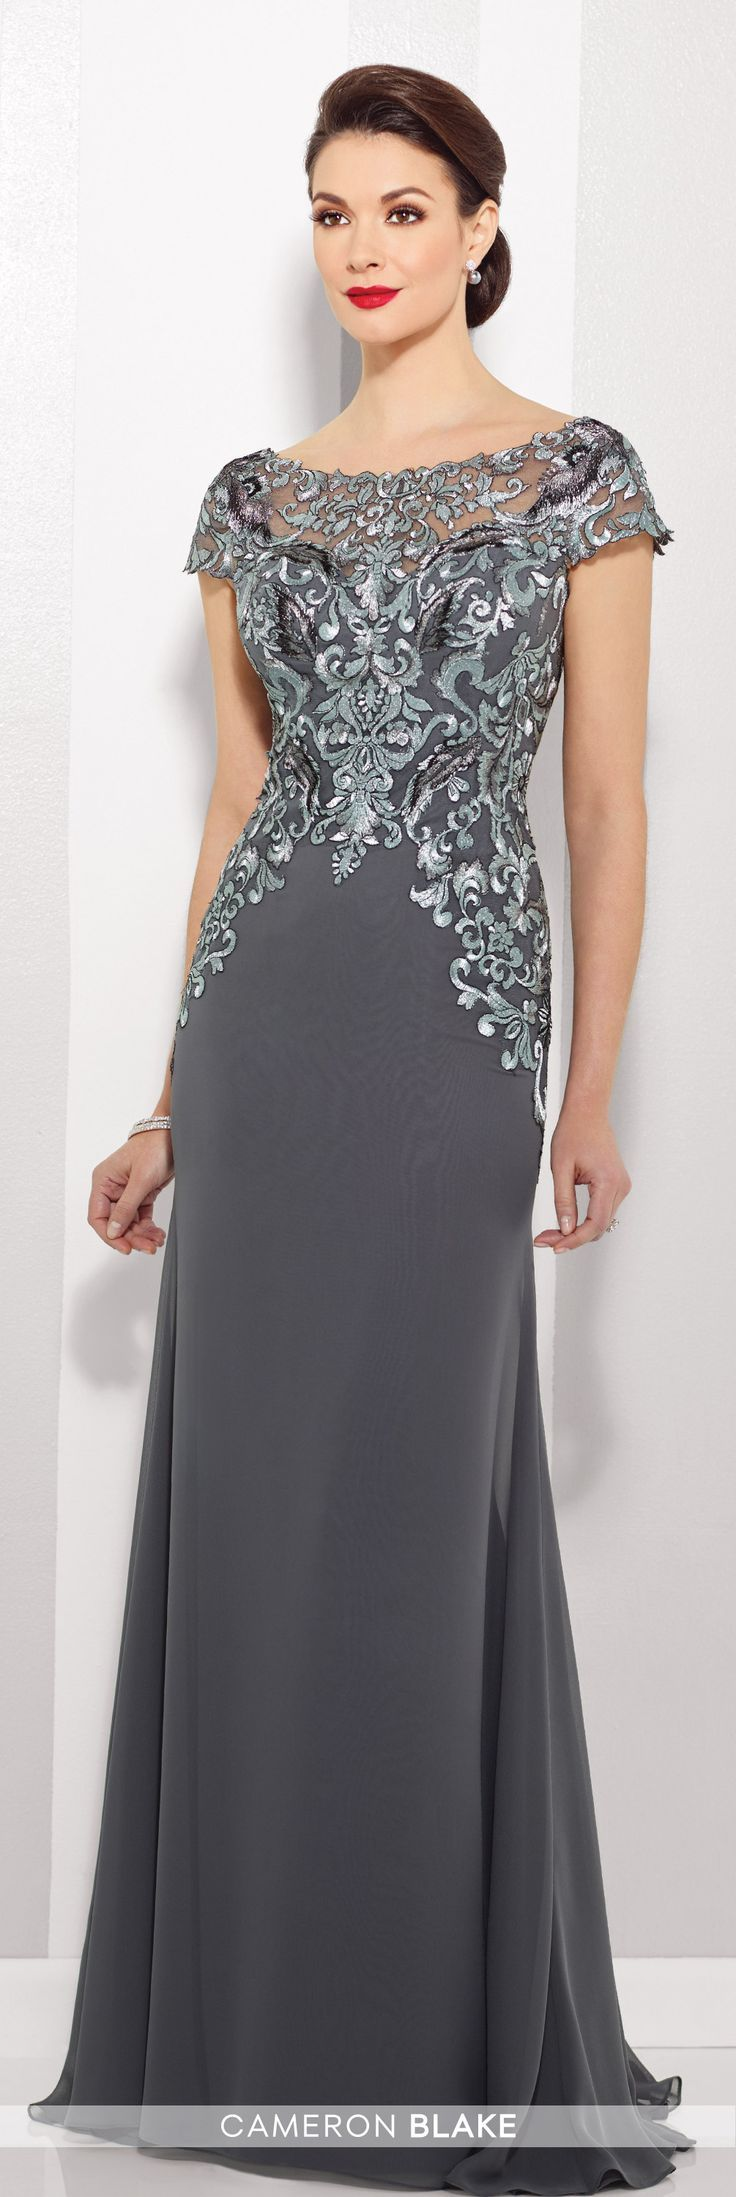 Chiffon A-line Gown With Illusion Cap Sleeves - Cameron Blake 216691